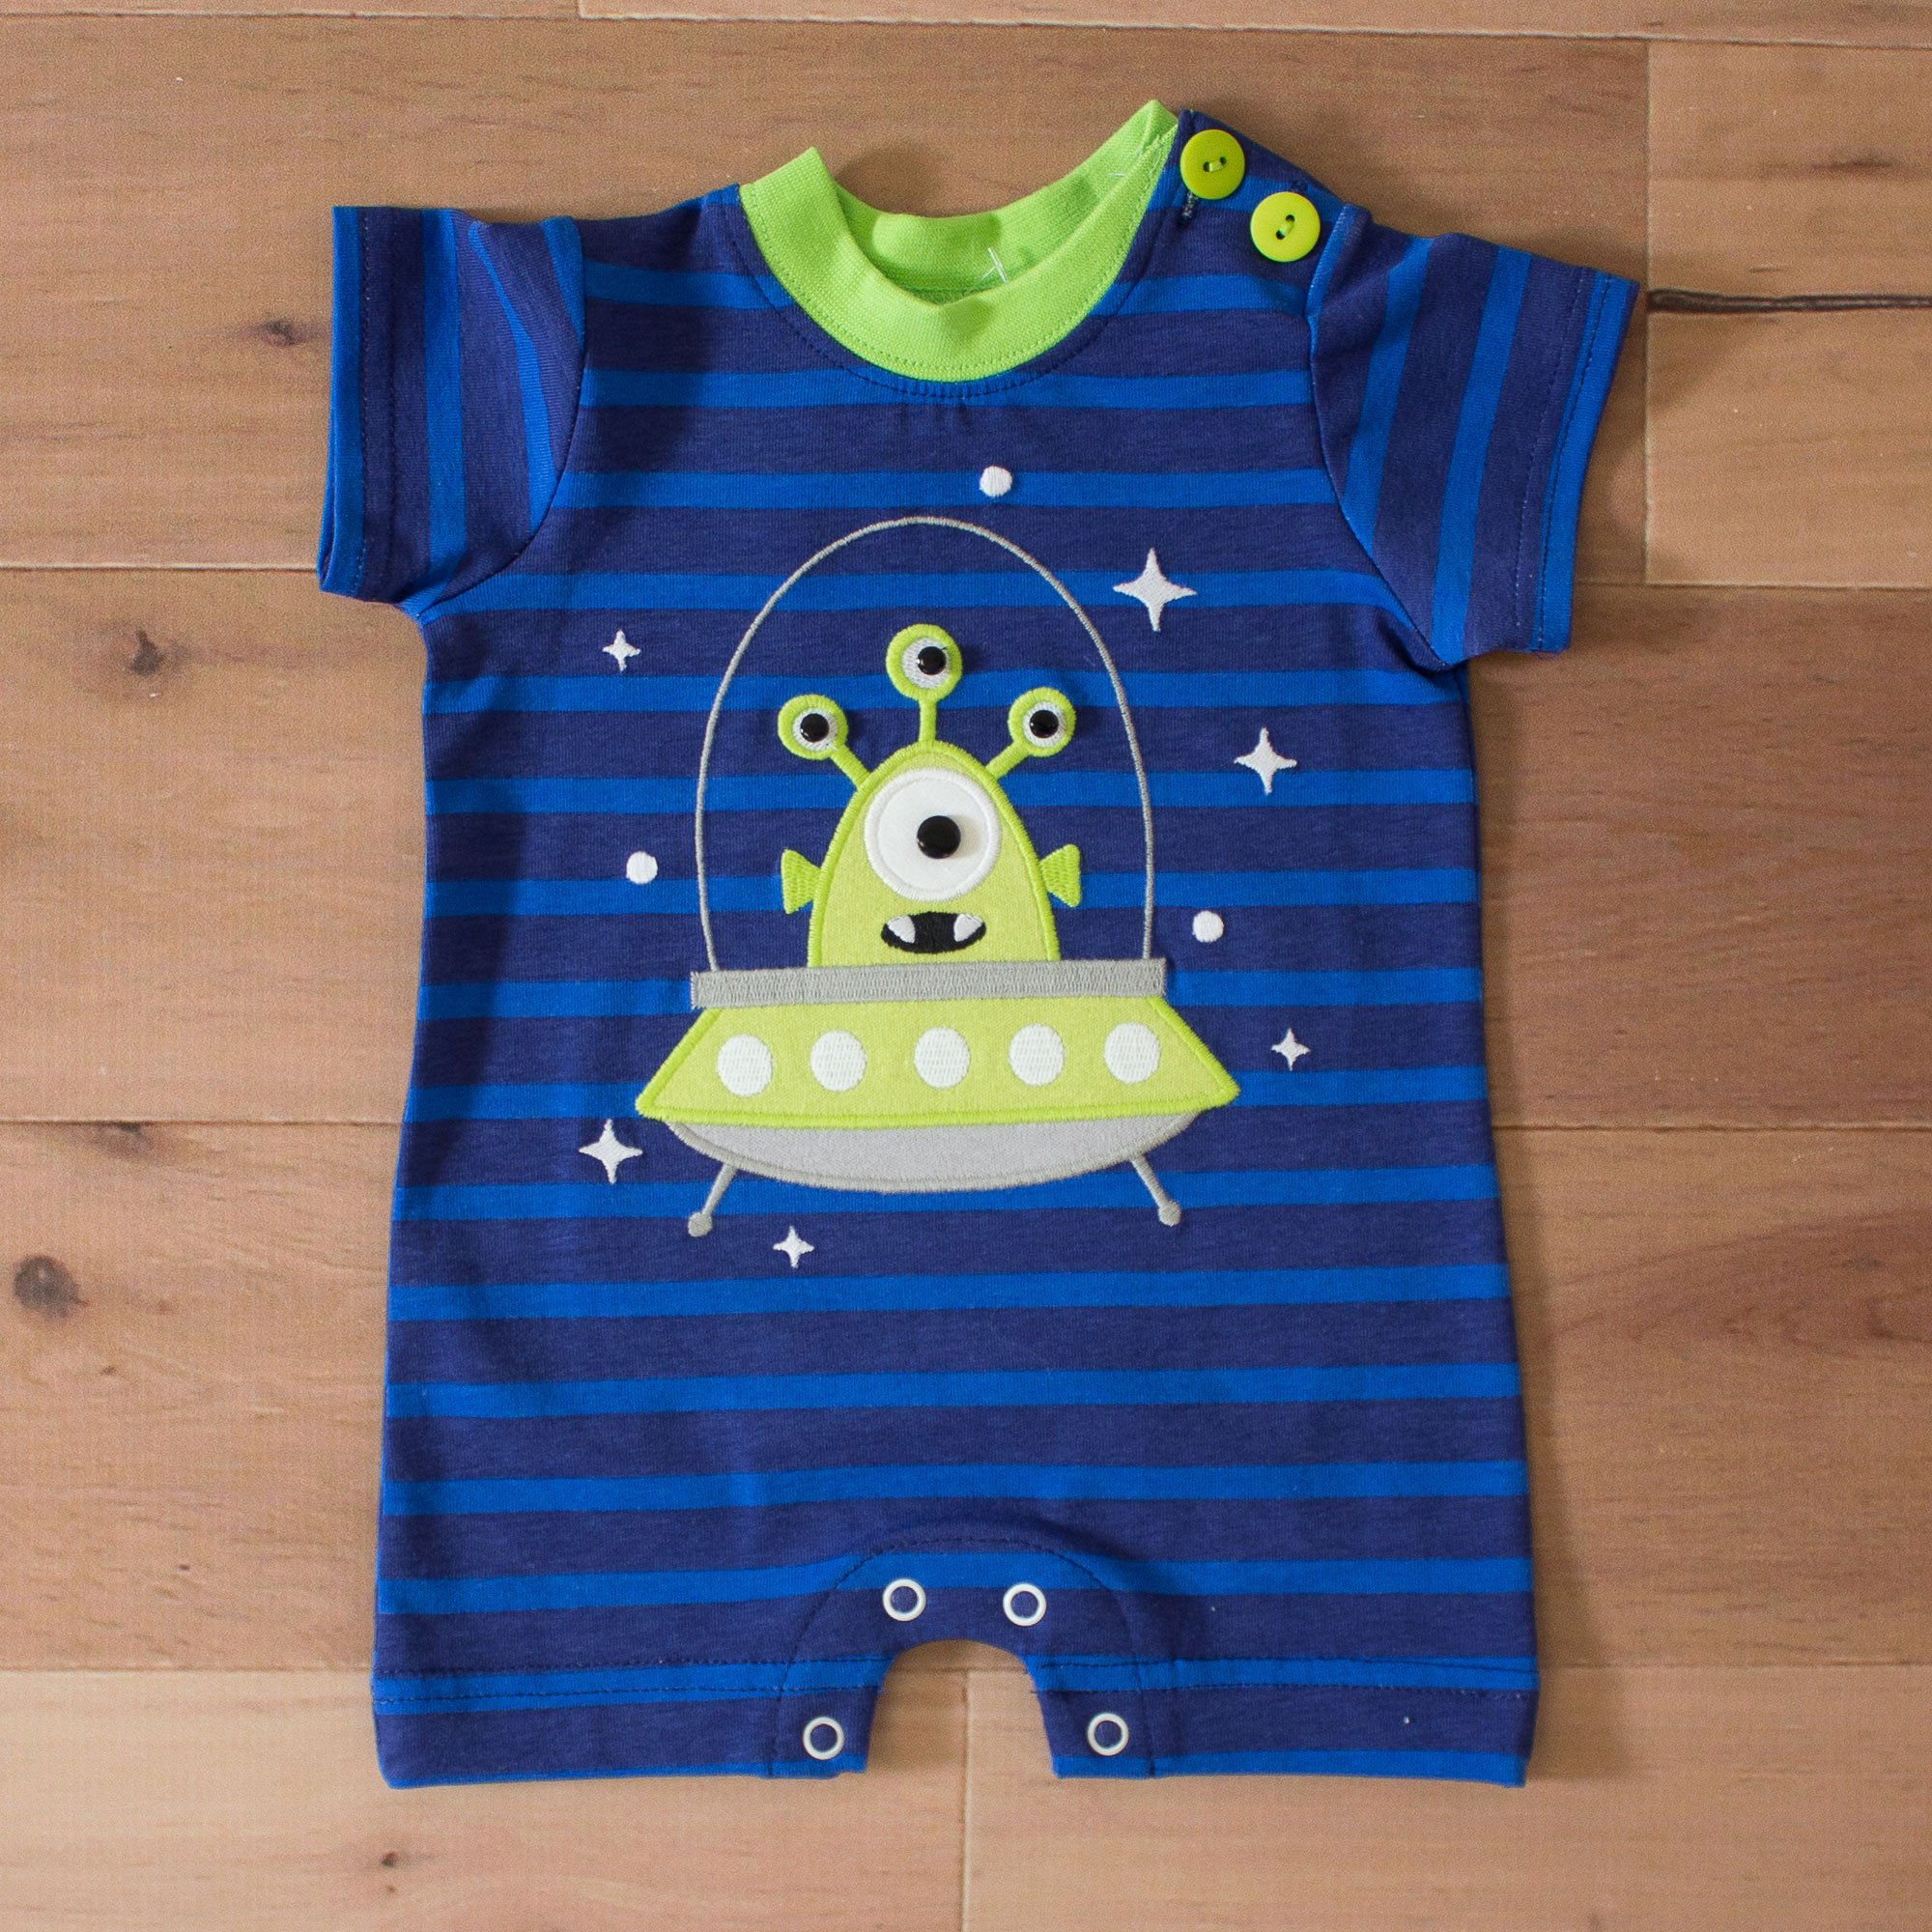 Wally Amp Willie Outa This World Romper For Baby Boys